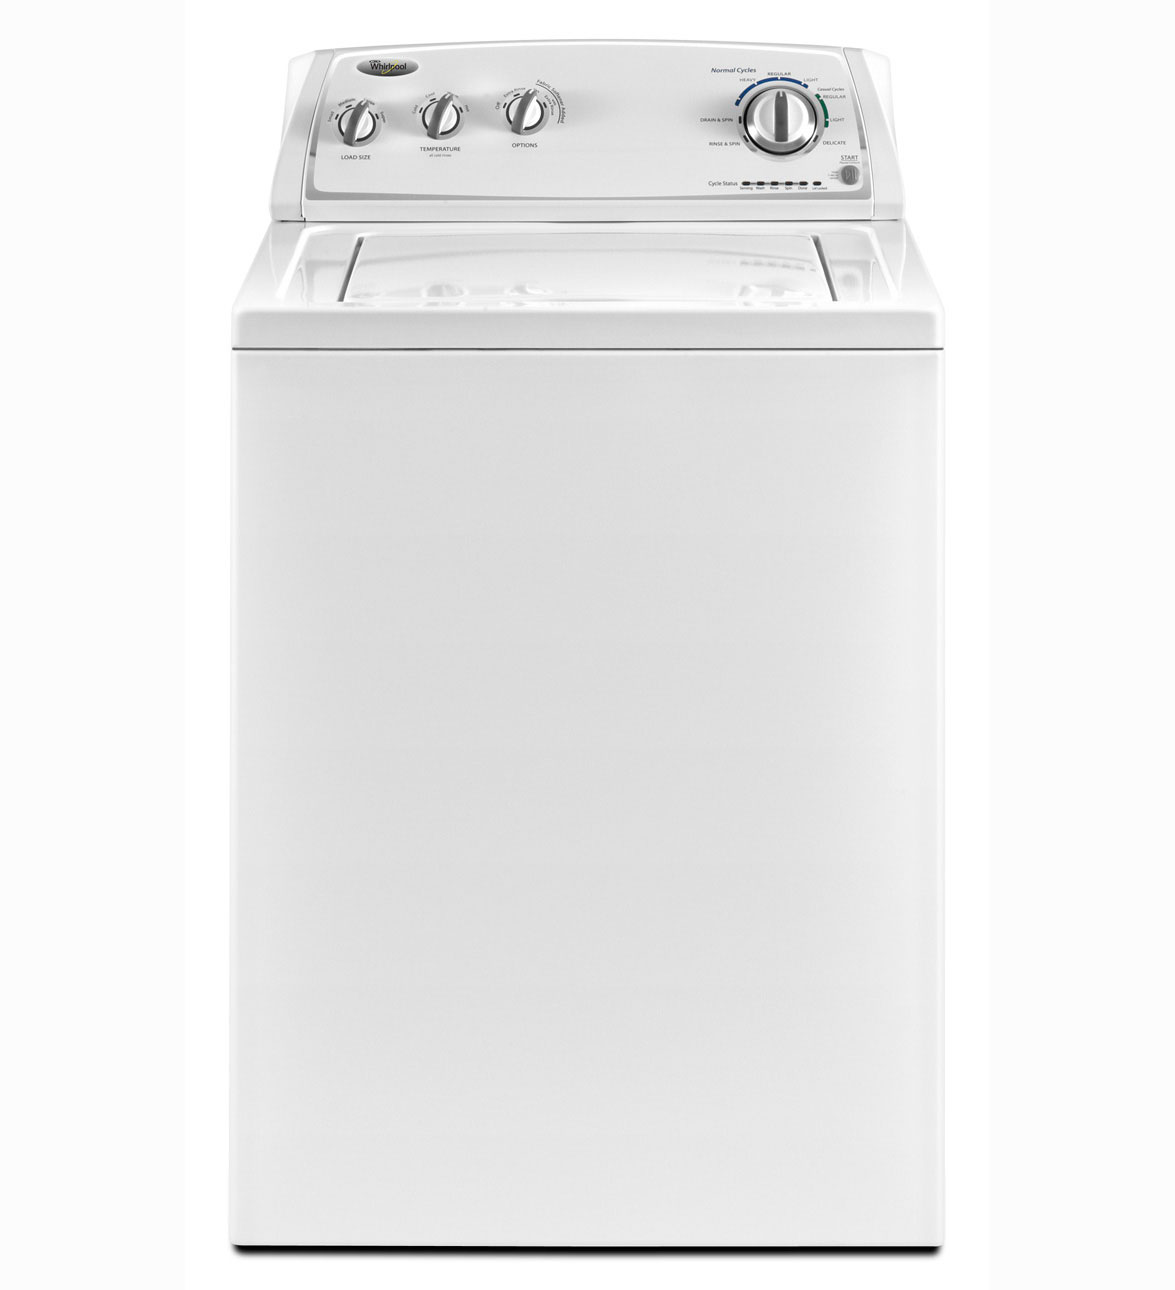 Whirlpool 3.4 cu ft Top-Load Washer (White) (Model: WTW4800XQ) - Reviews of Top 11 Top Load Washers